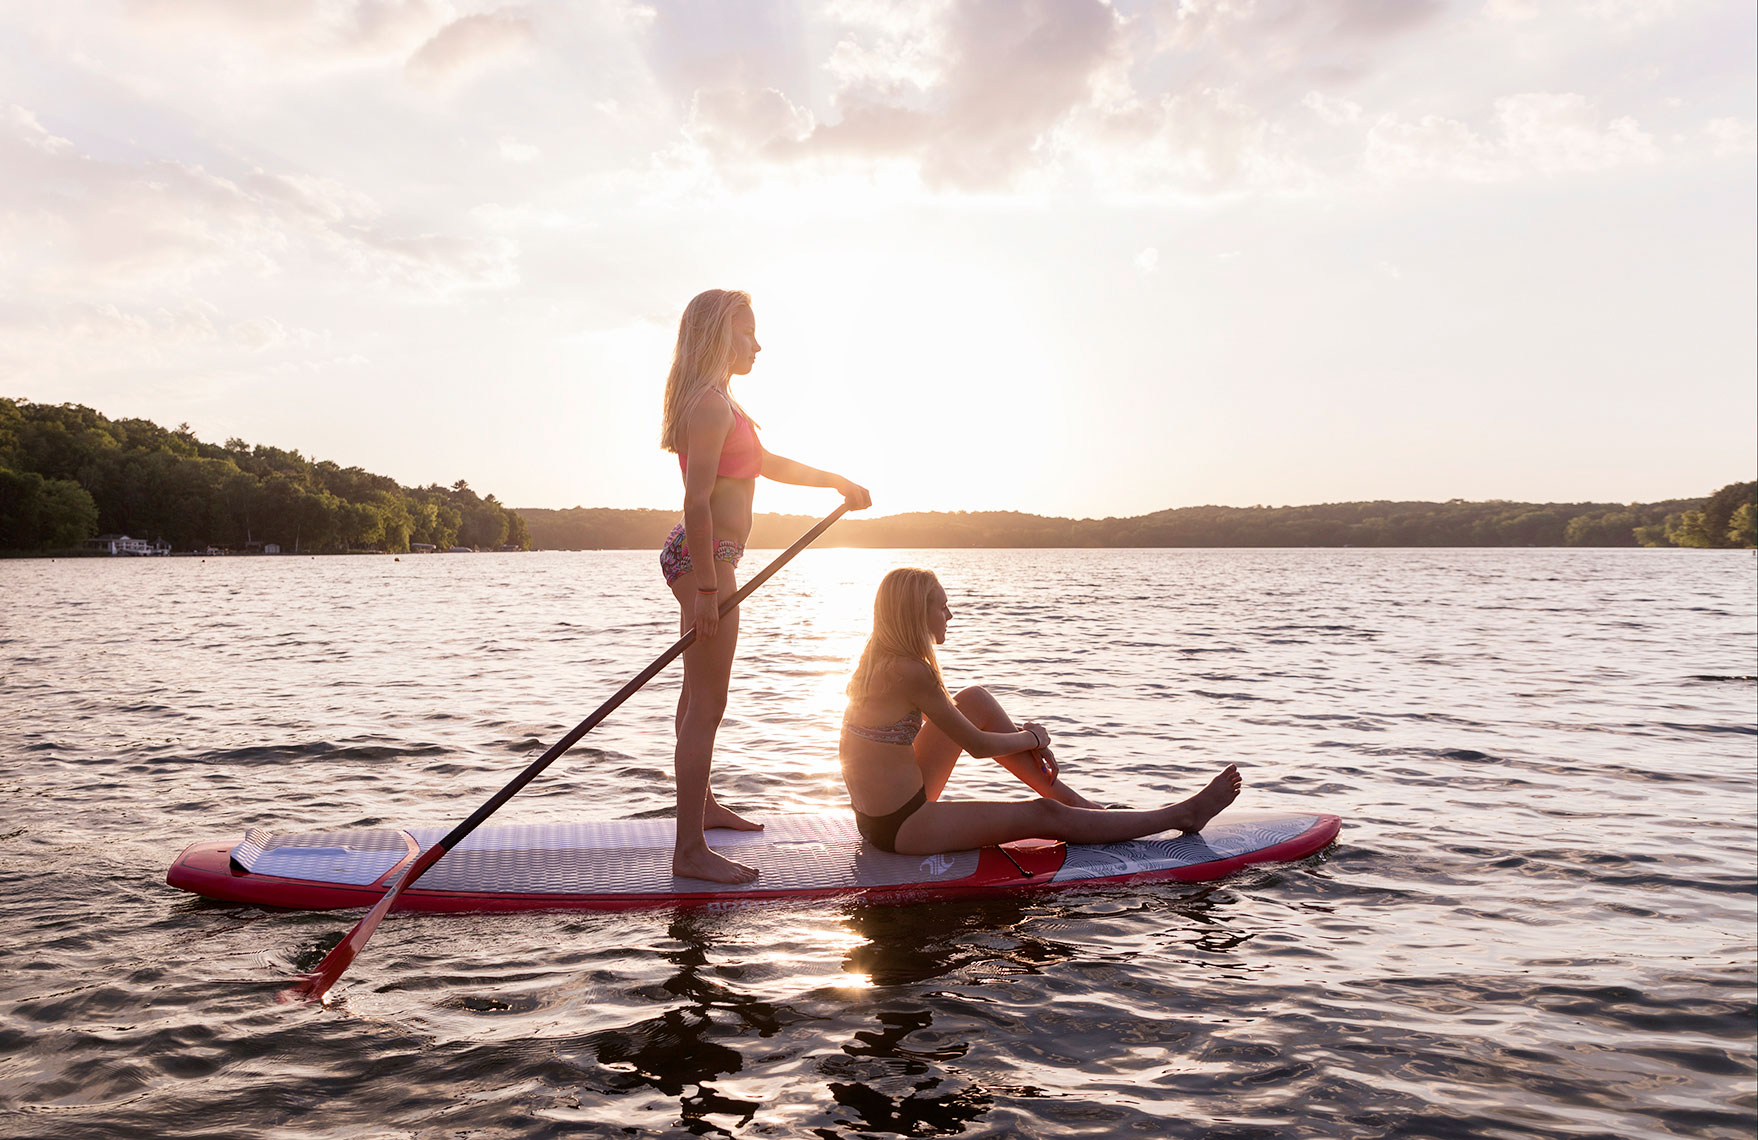 ANJA-AND-ELSA-ON-THE-PADDLEBOARD_Per-Breiehagen